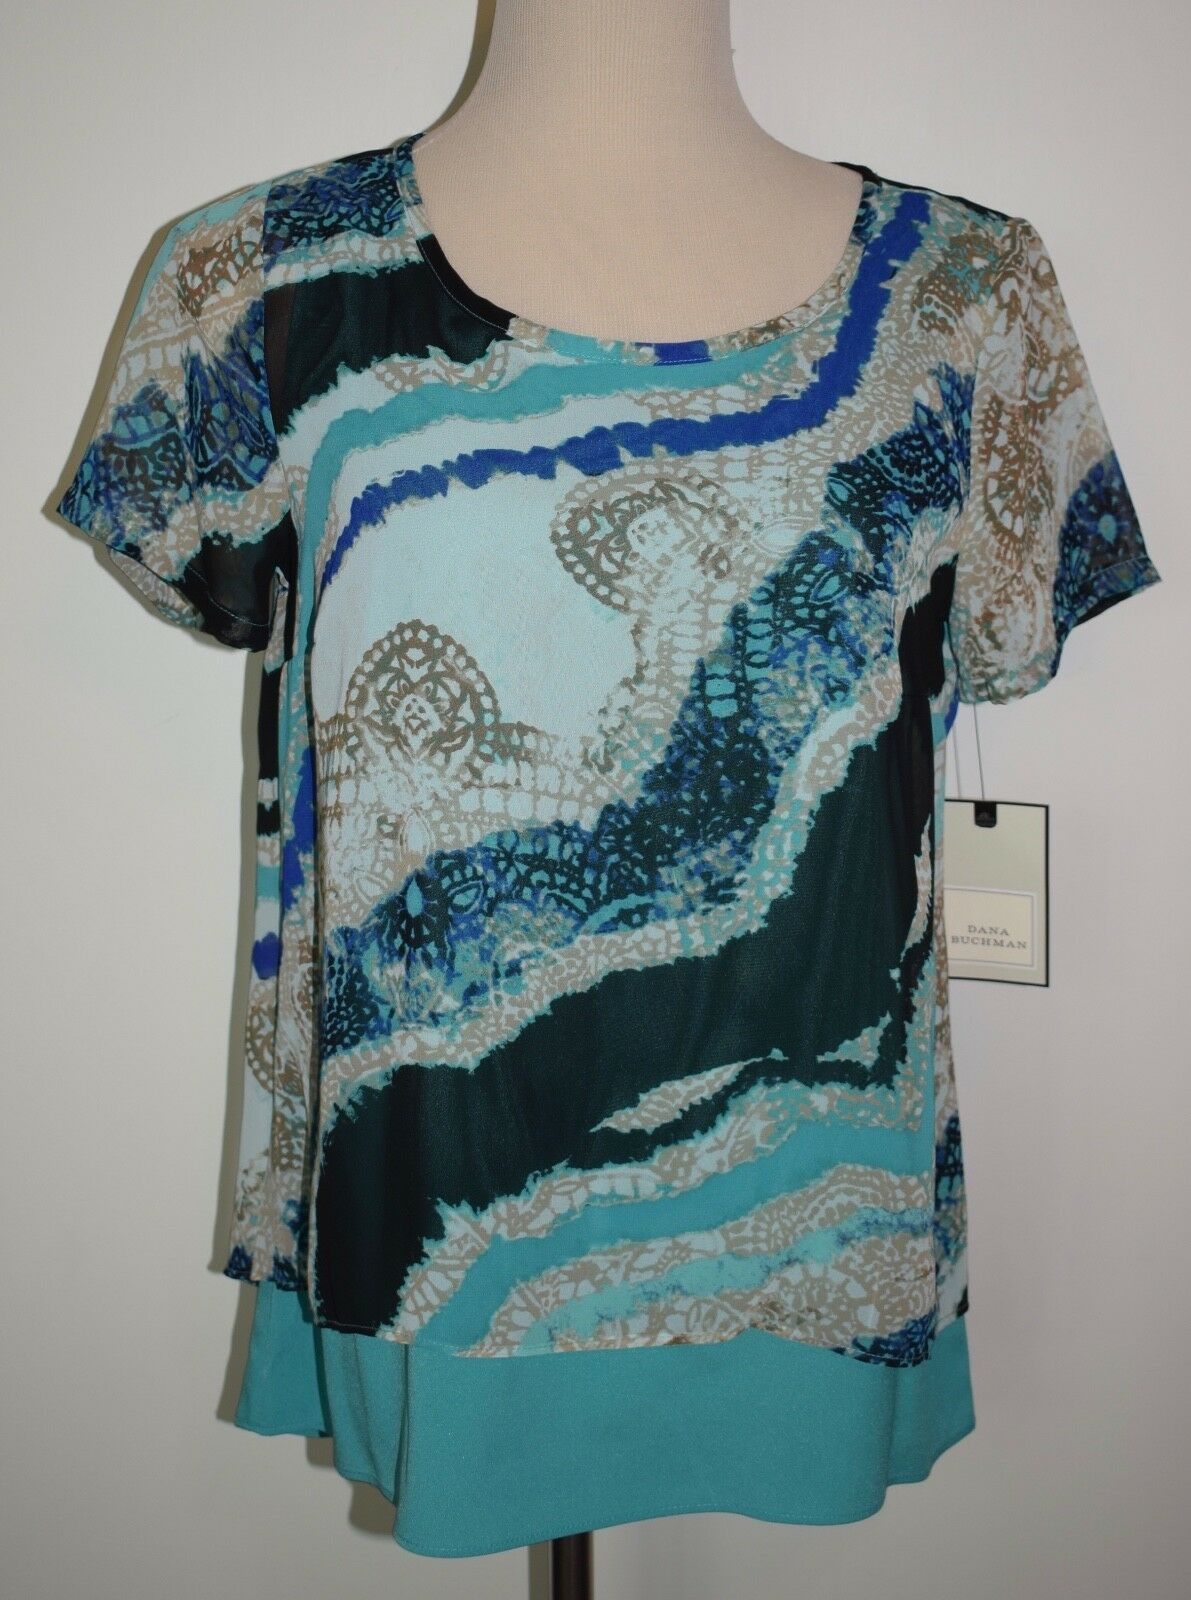 Primary image for New Dana Buchman Small Blouse Split Back Layered Short Sleeve Aqua Design Top